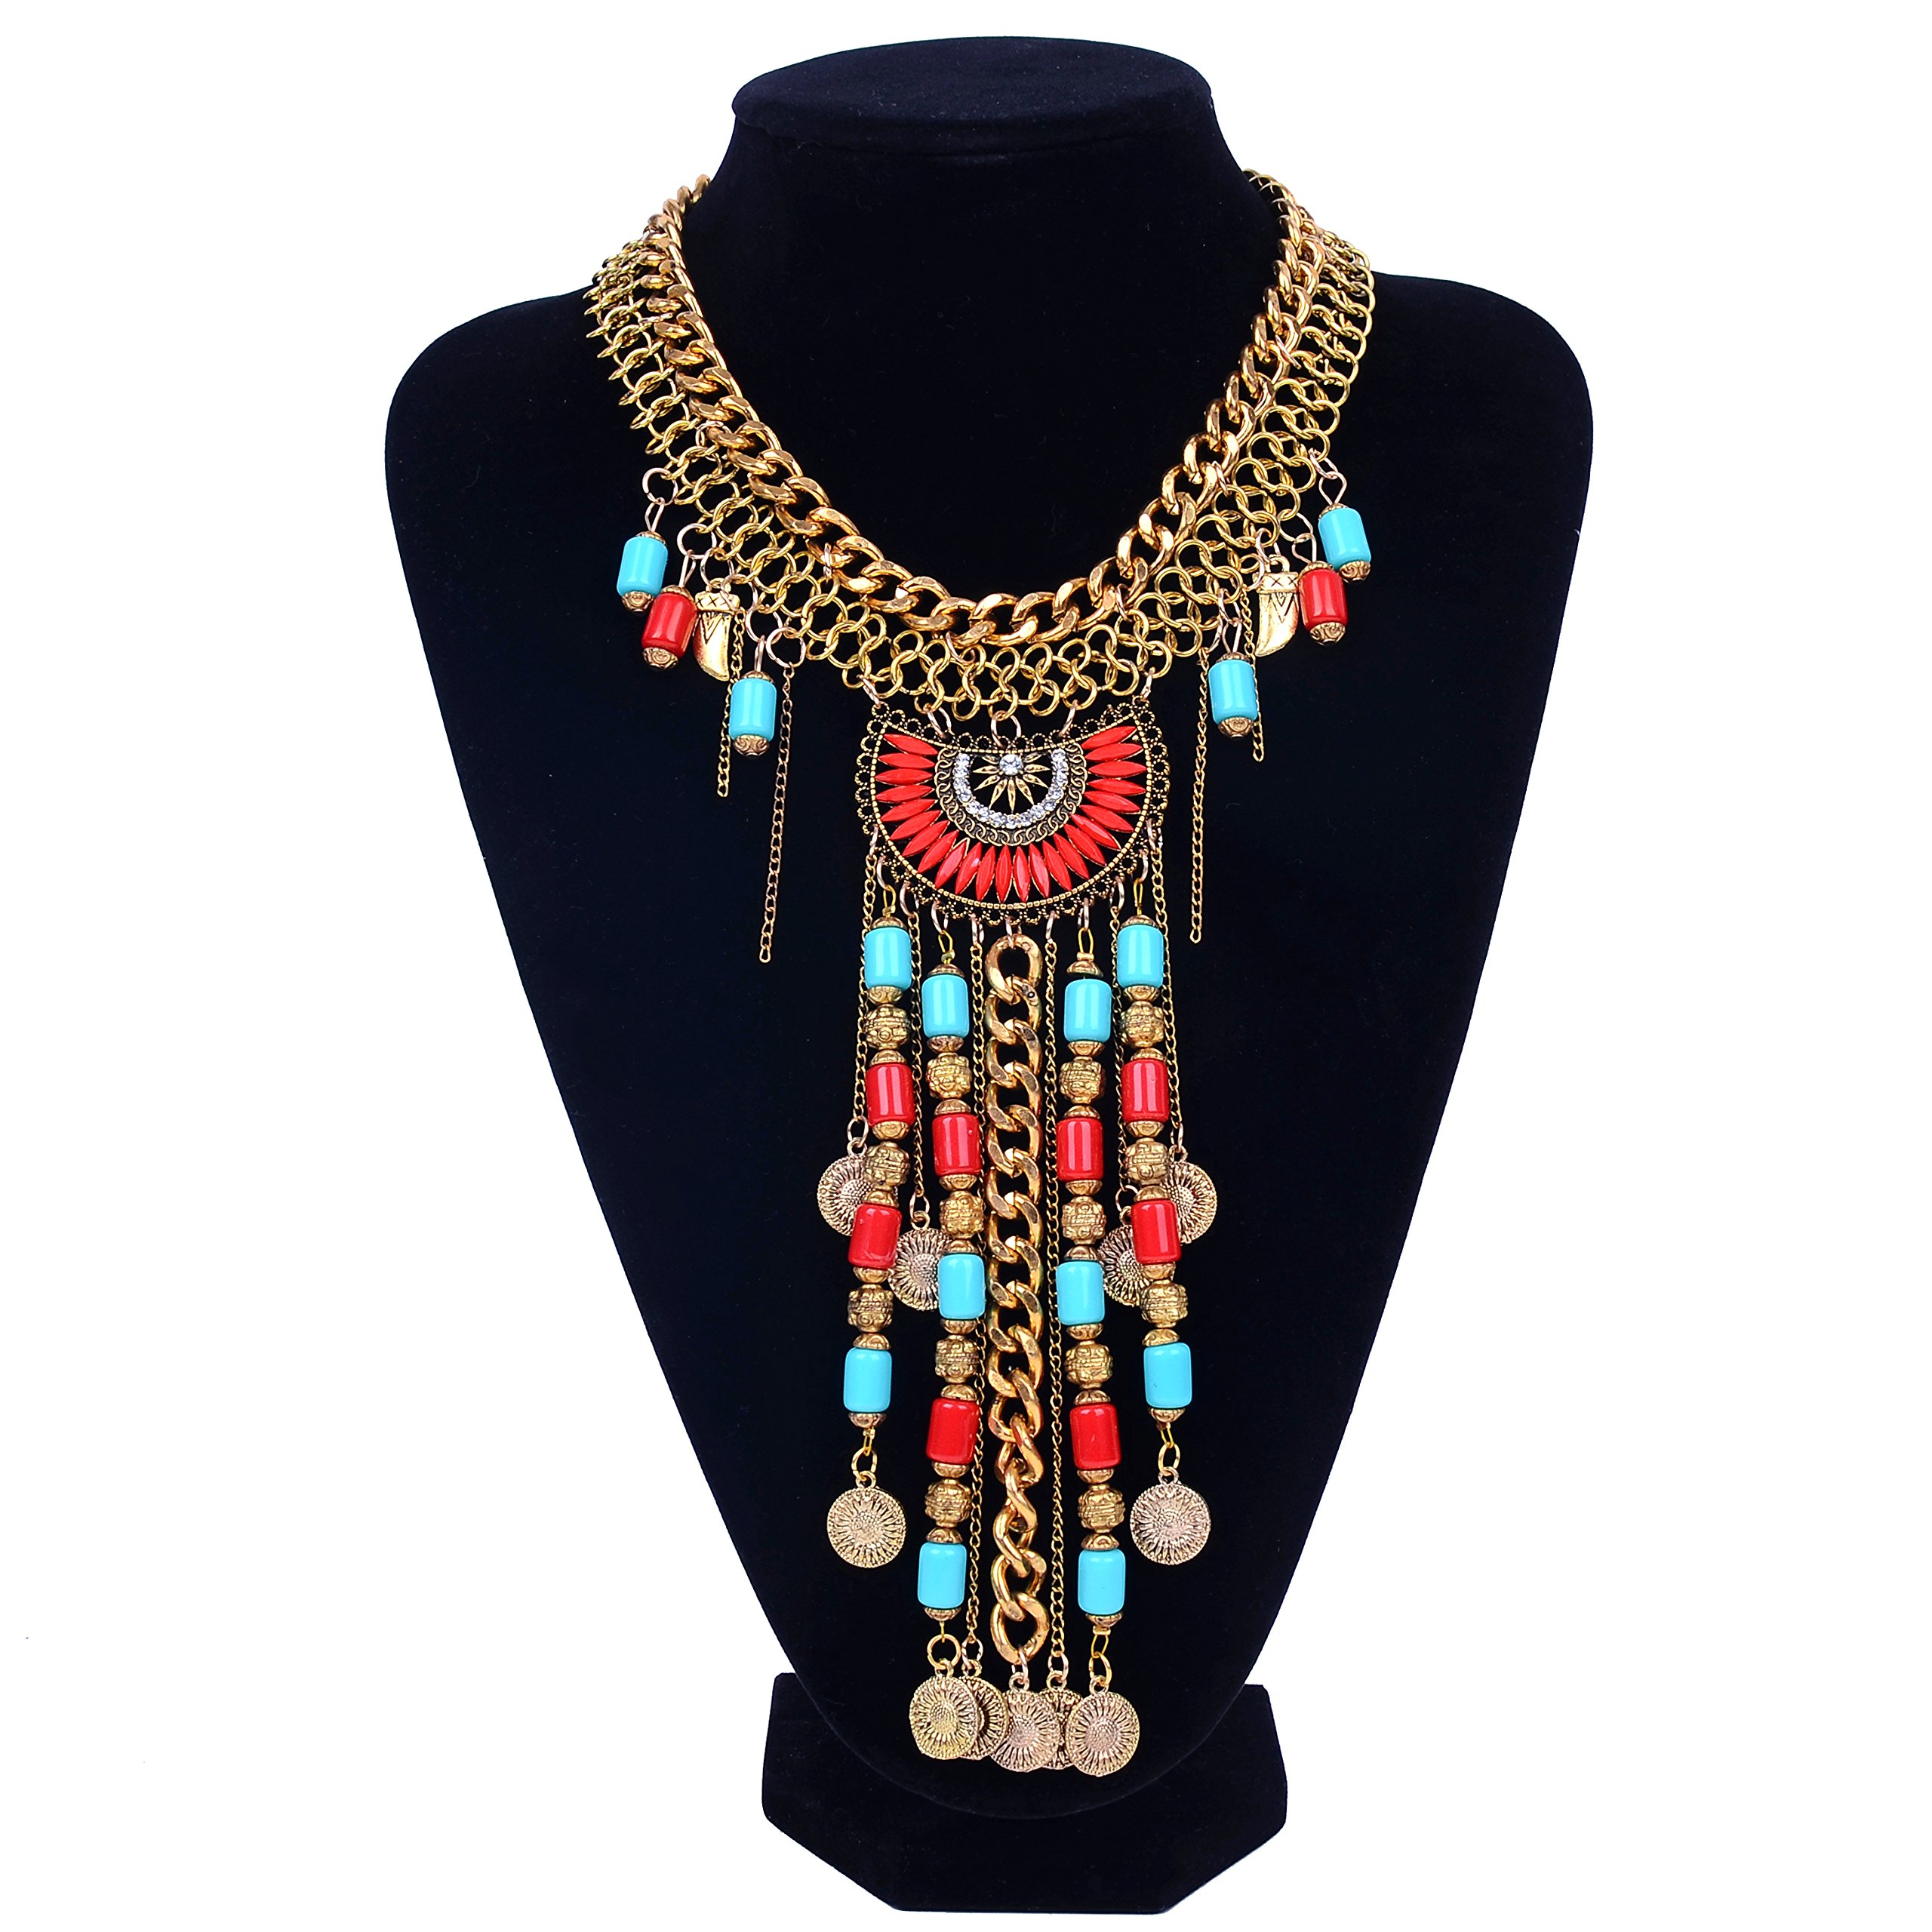 Paxuan Womens Antique Silver/Gold Alloy Vintage Long Boho Bohemia Turquoise Necklace Ethnic Tribal Beads Coin Fringe Statement Necklace Bohemian Style (Antique Gold)